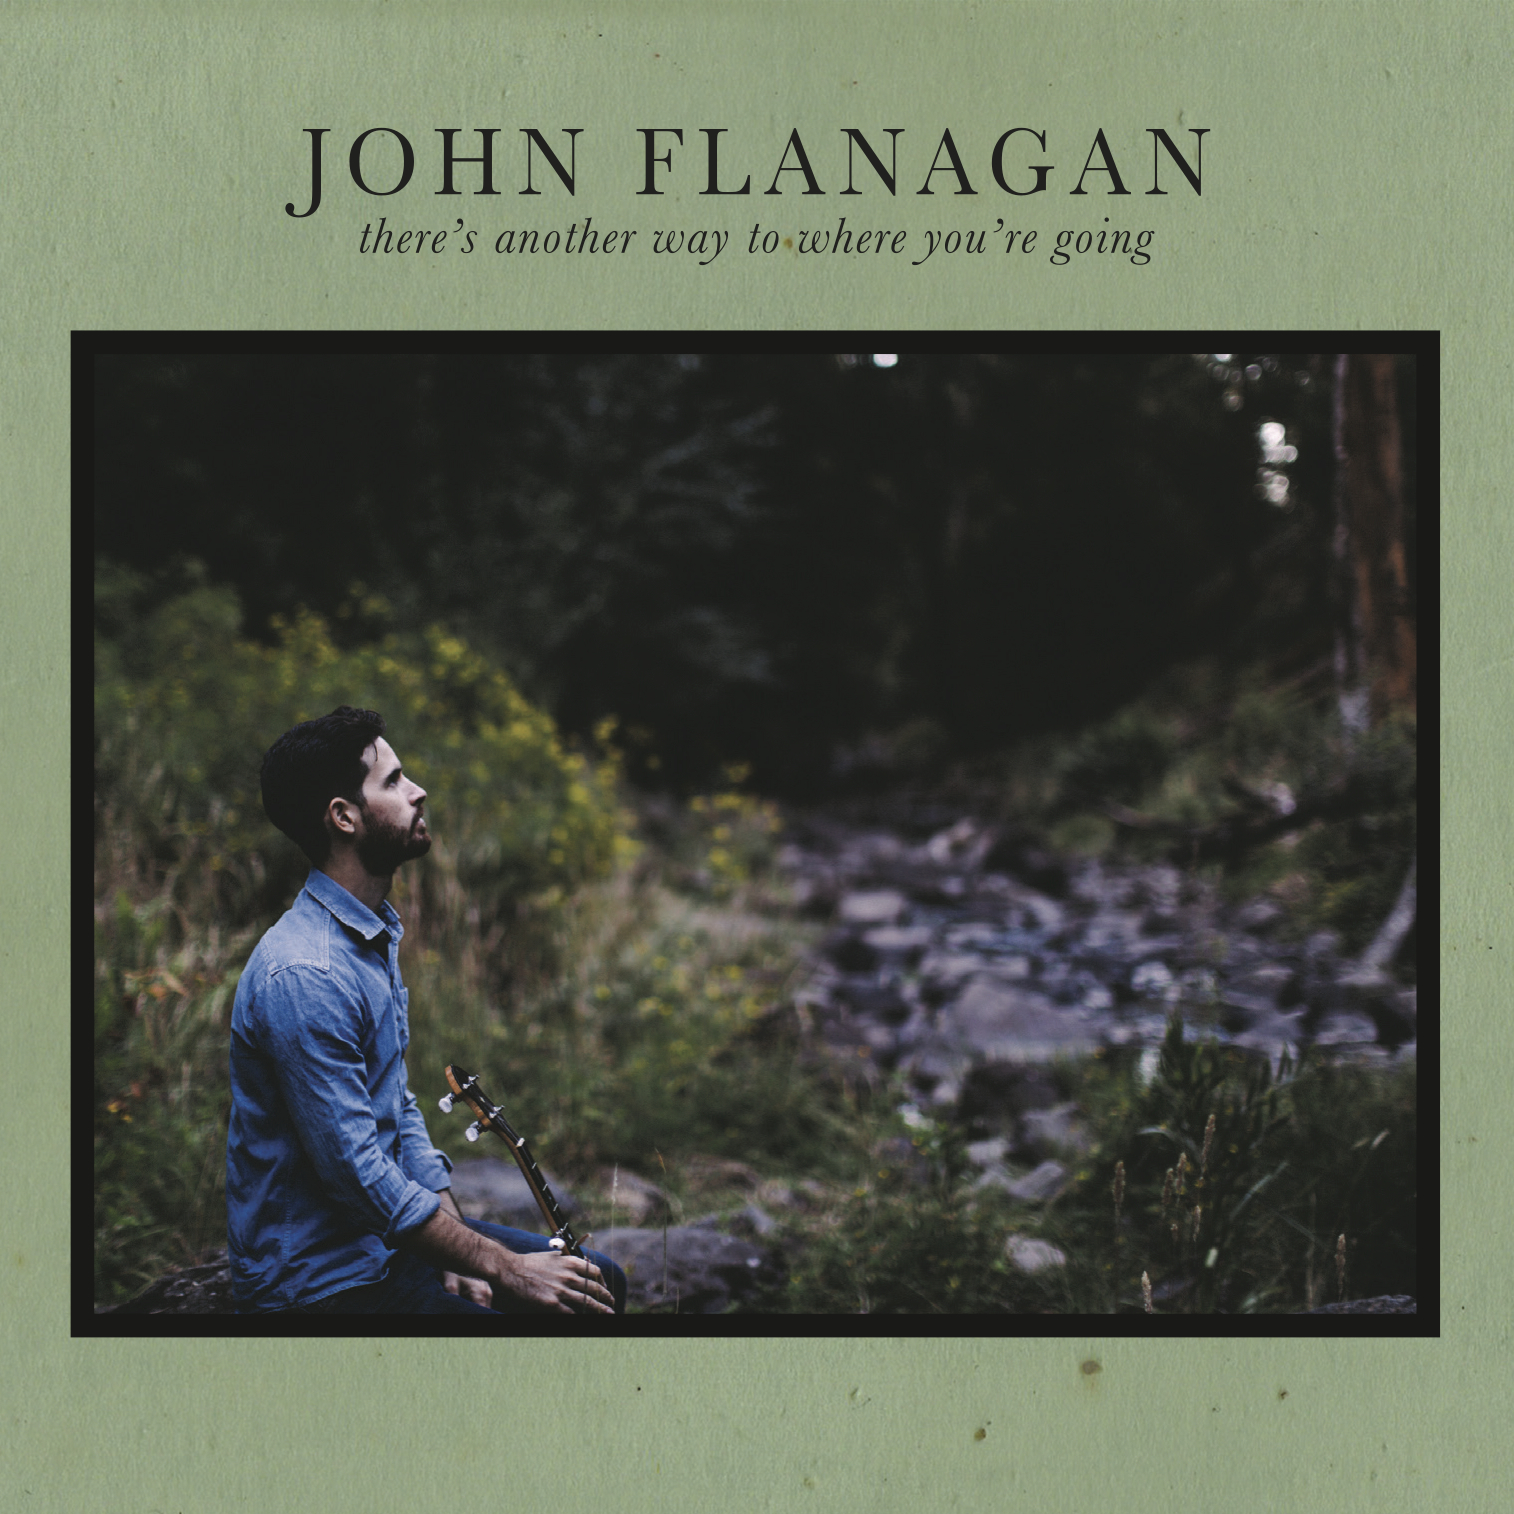 John Flanagan - There's Another Way